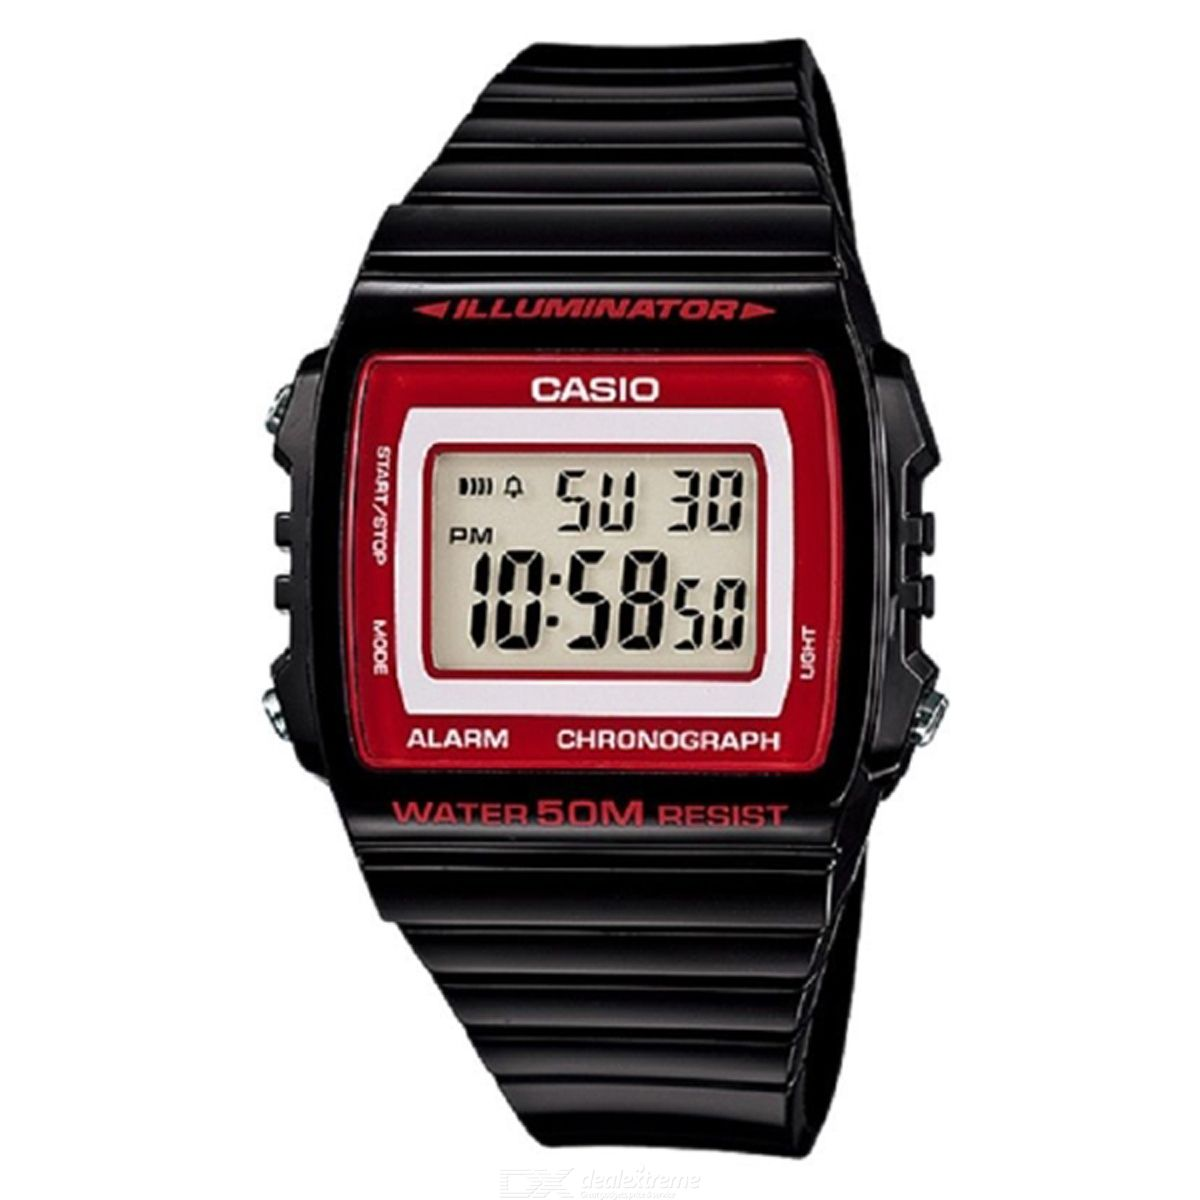 CASIO W-215H-1A2VDF Men's Wristwatch - Black + Red (Without Box)